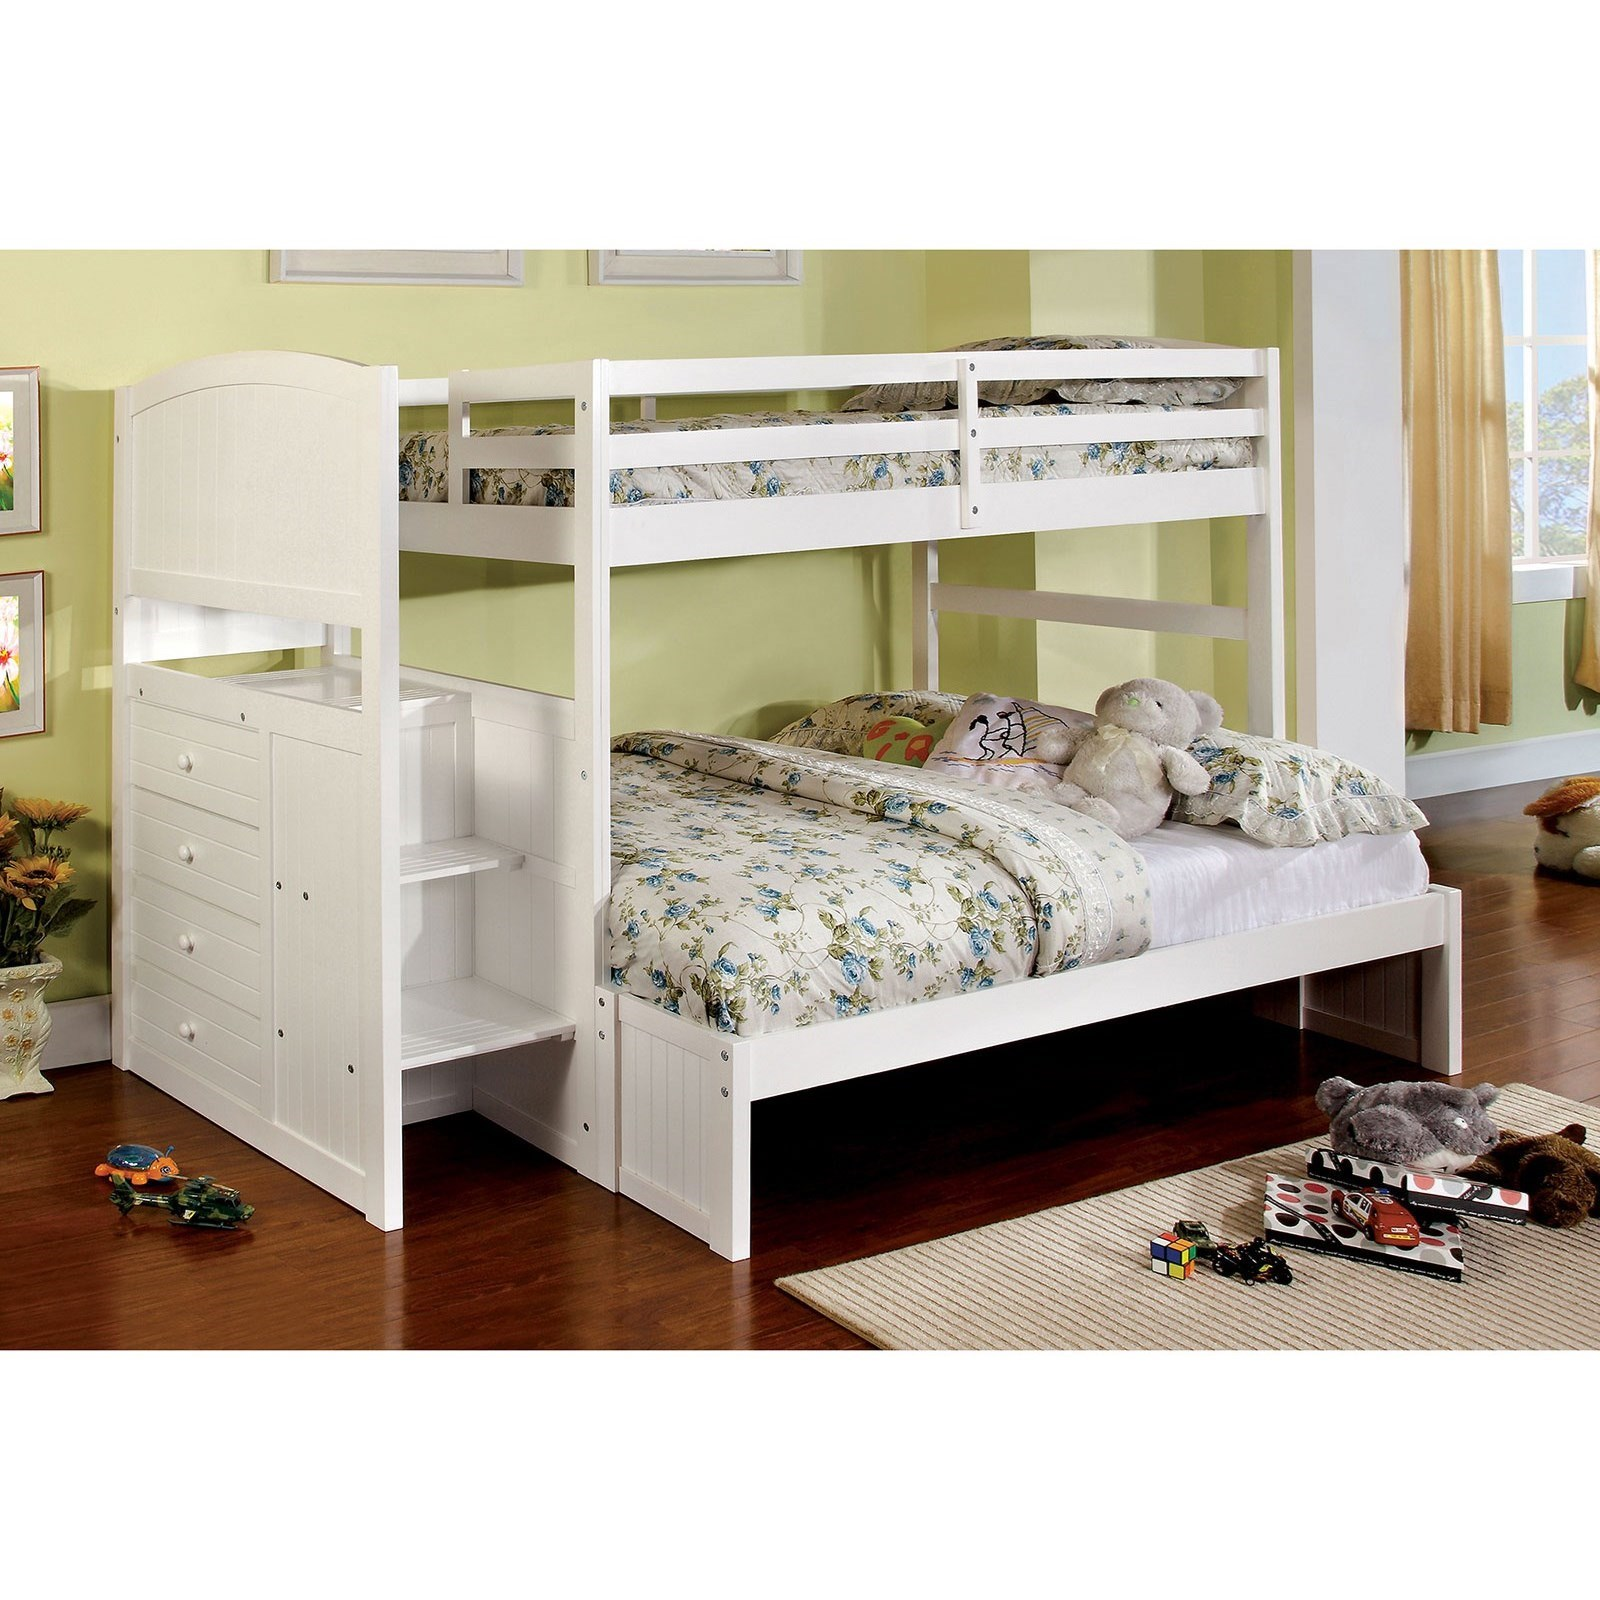 Appenzell Twin/Full Bunk Bed at Household Furniture